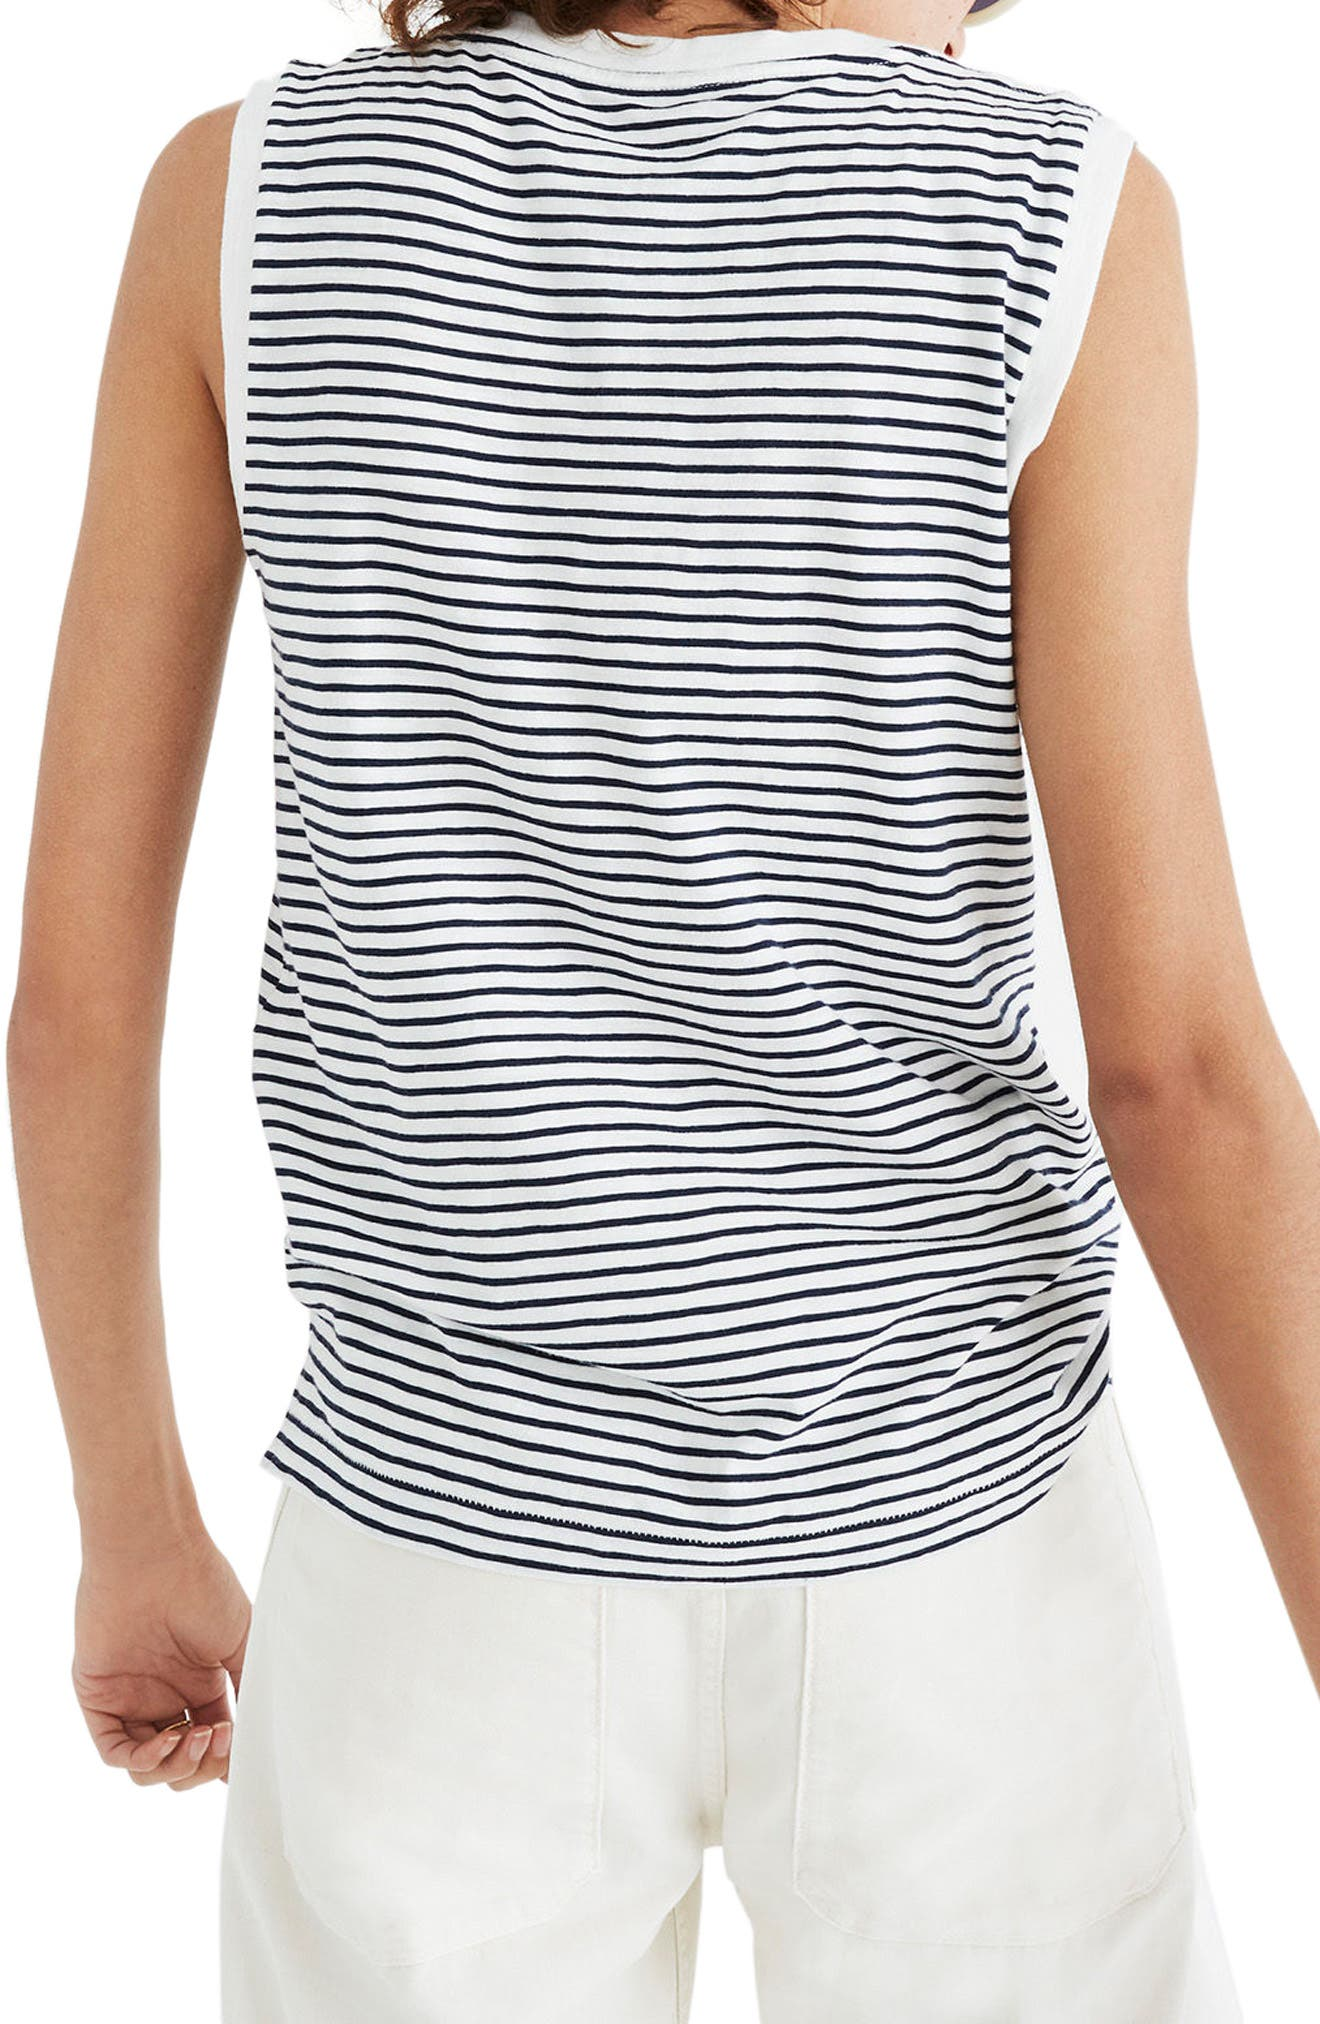 Whisper Cotton Stripe Crewneck Muscle Tank,                             Main thumbnail 1, color,                             400